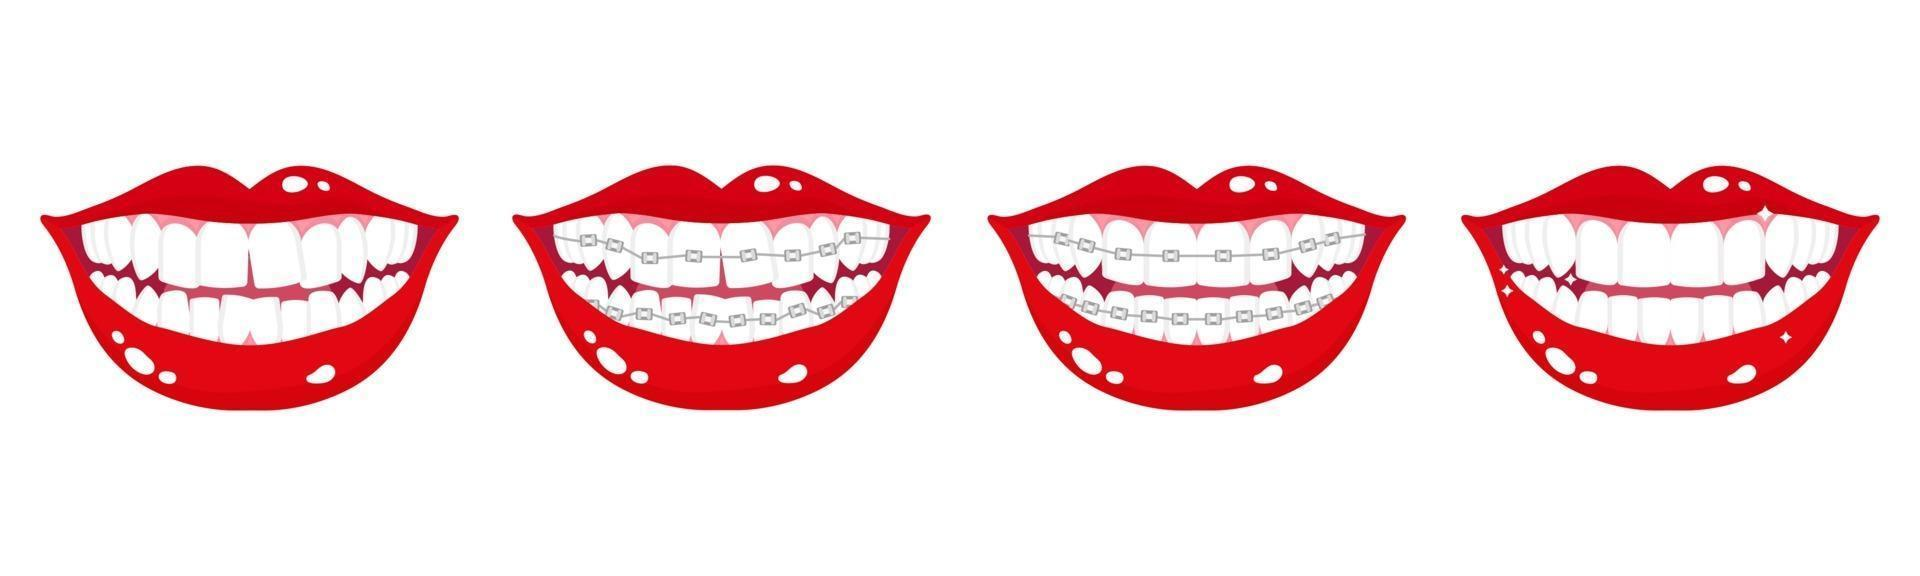 Vector cartoon set of smiling mouths with stages of teeth alignment using orthodontic metal braces on a white background